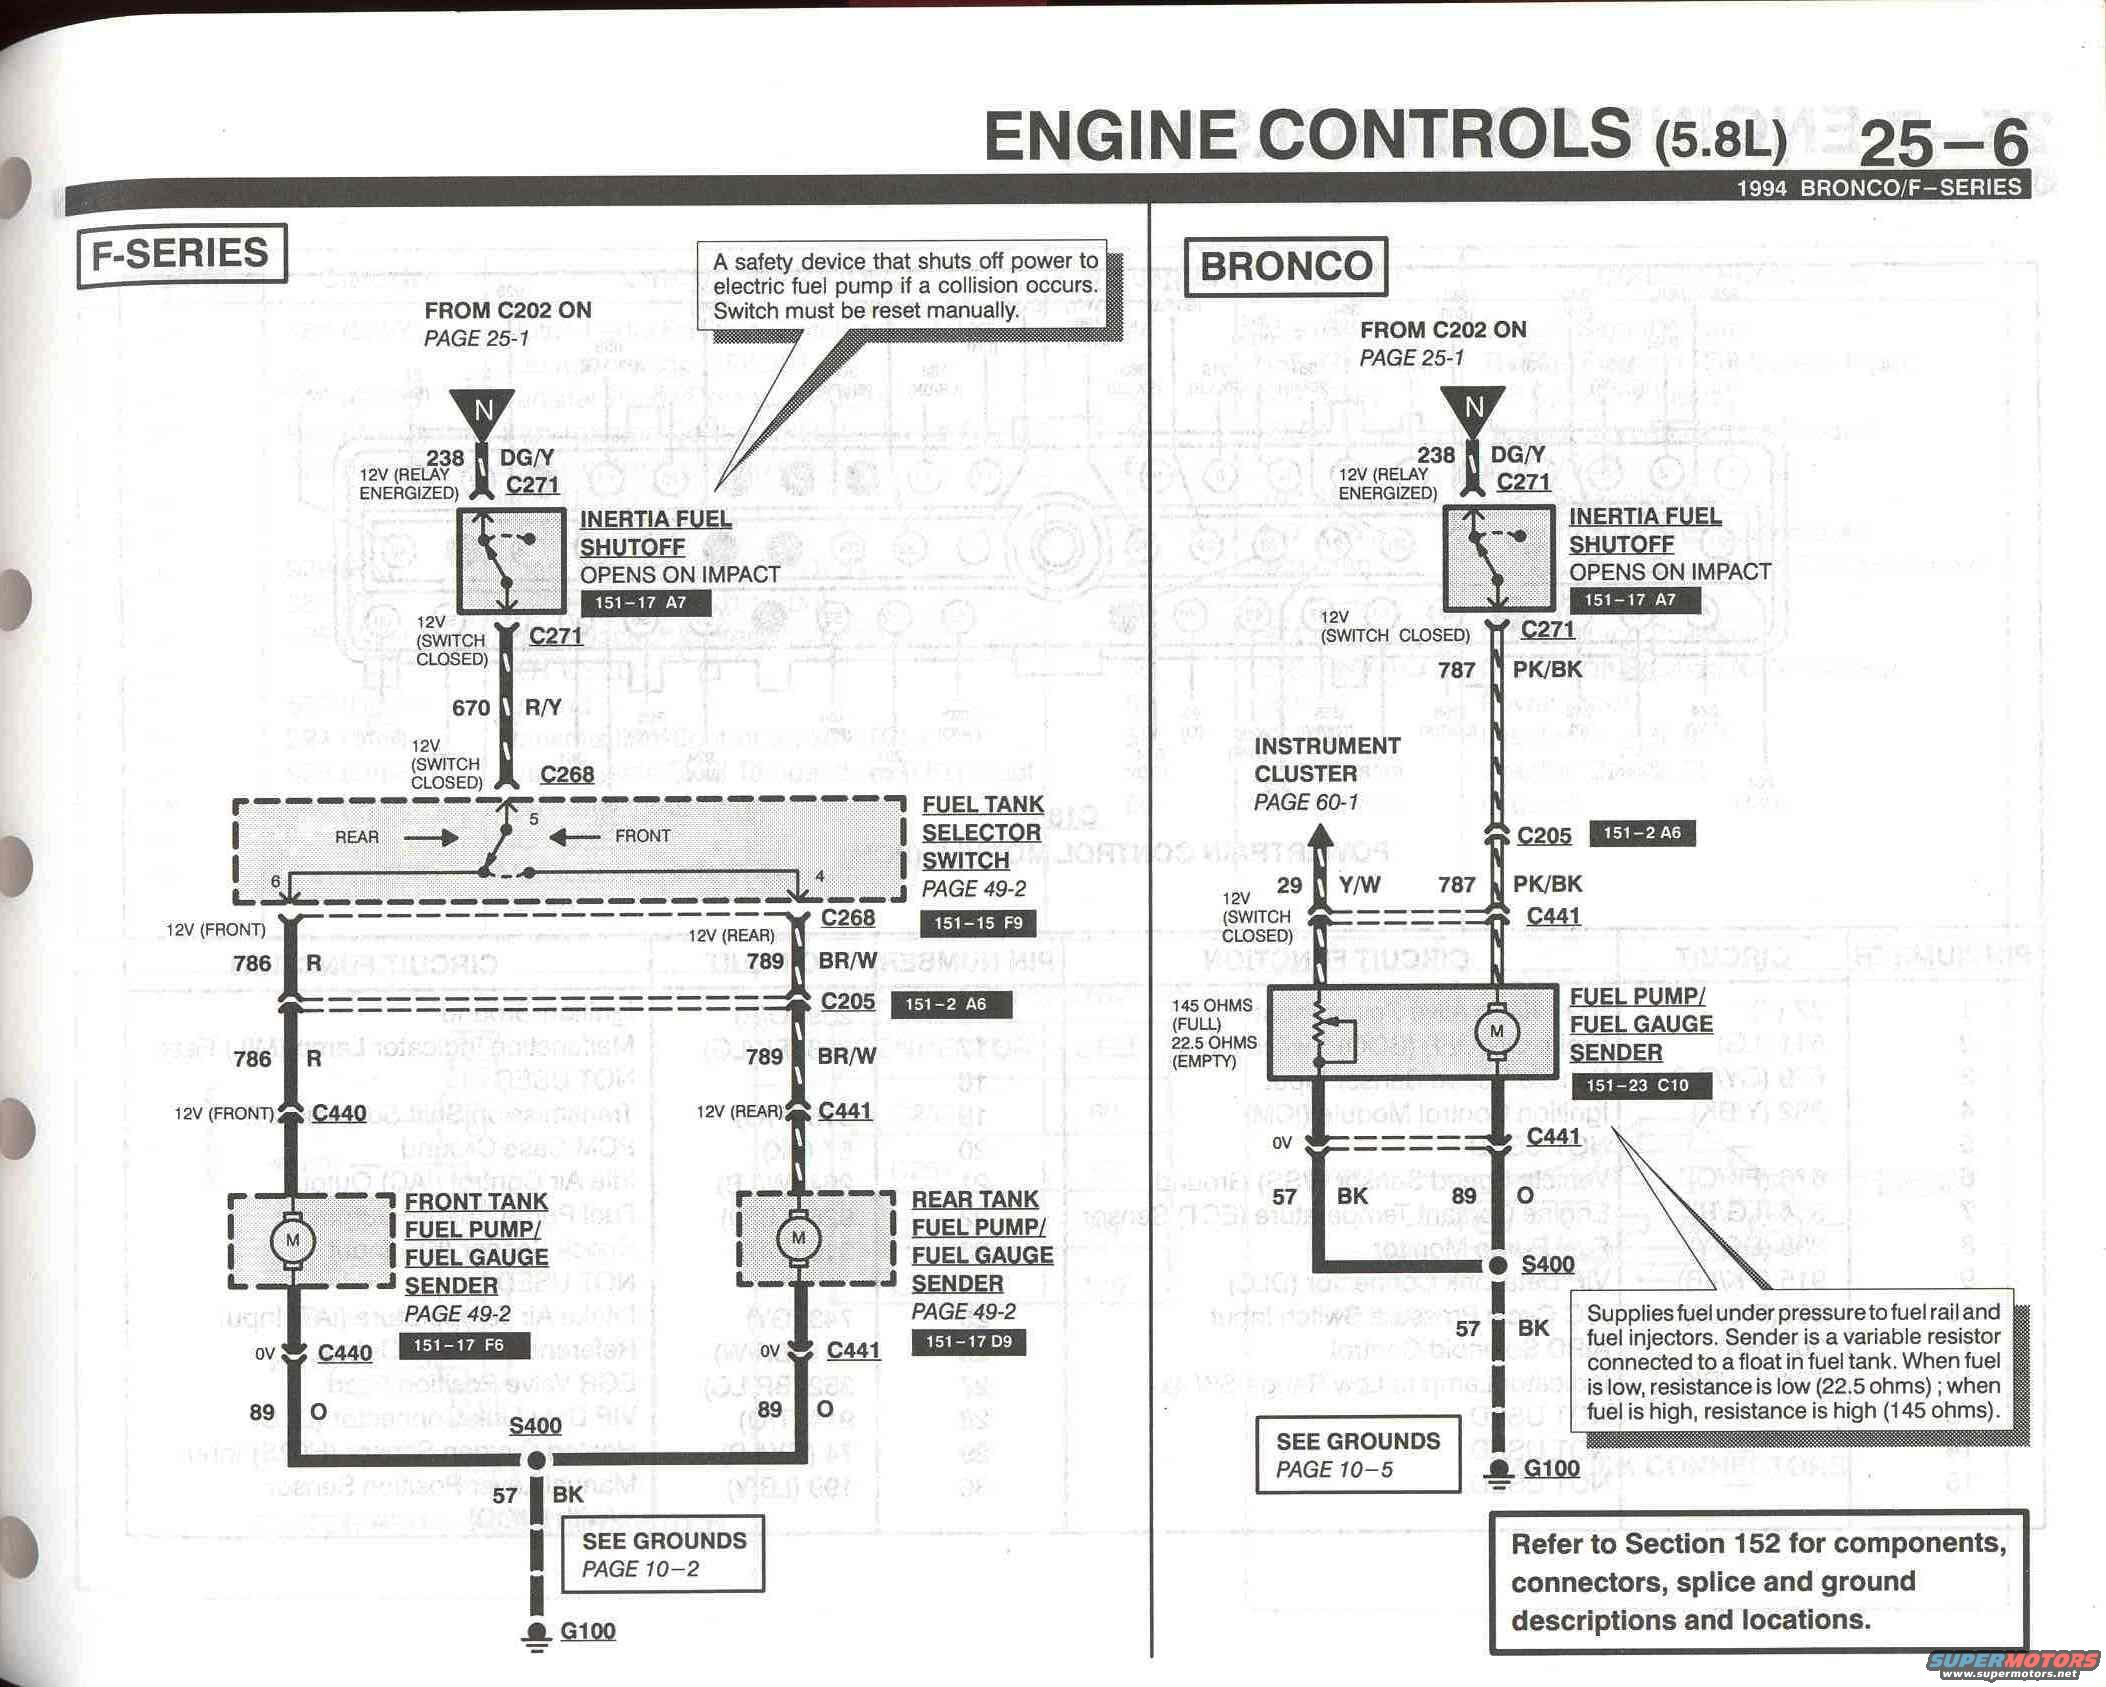 1996 ford bronco radio wiring diagram how to hook up a water softener kill switch question forum